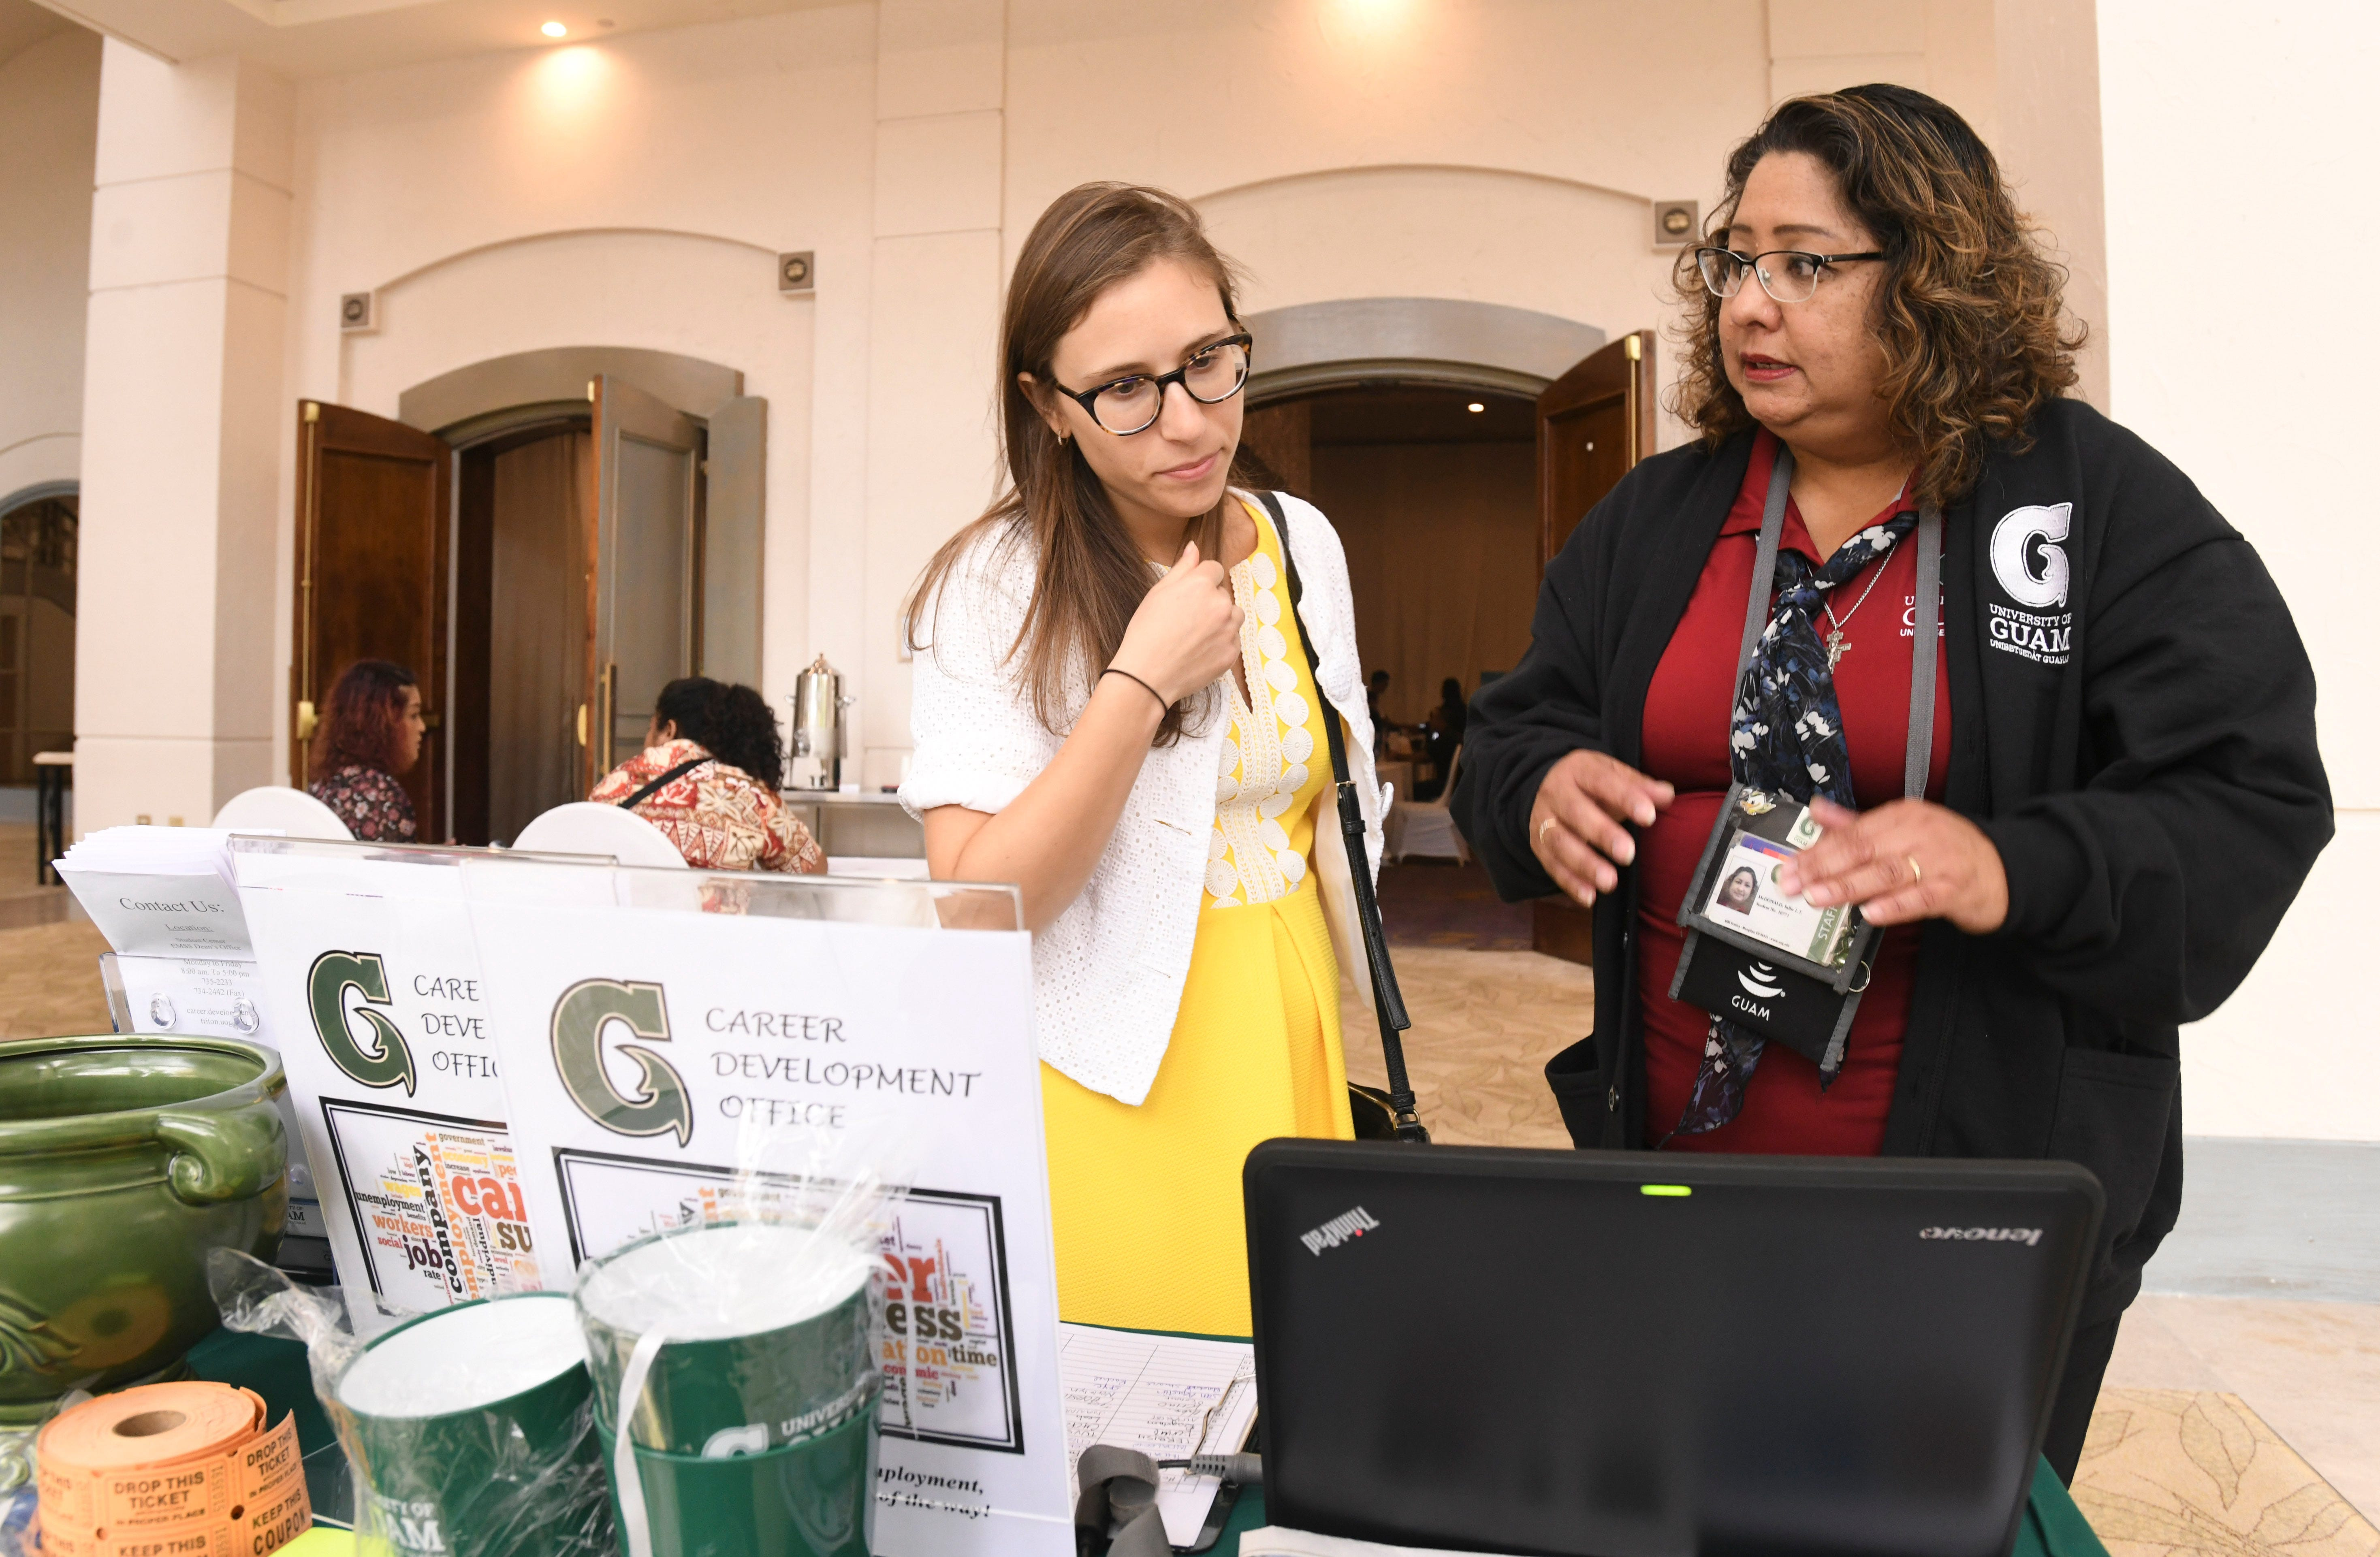 high school students attend chamber of commerce job fair